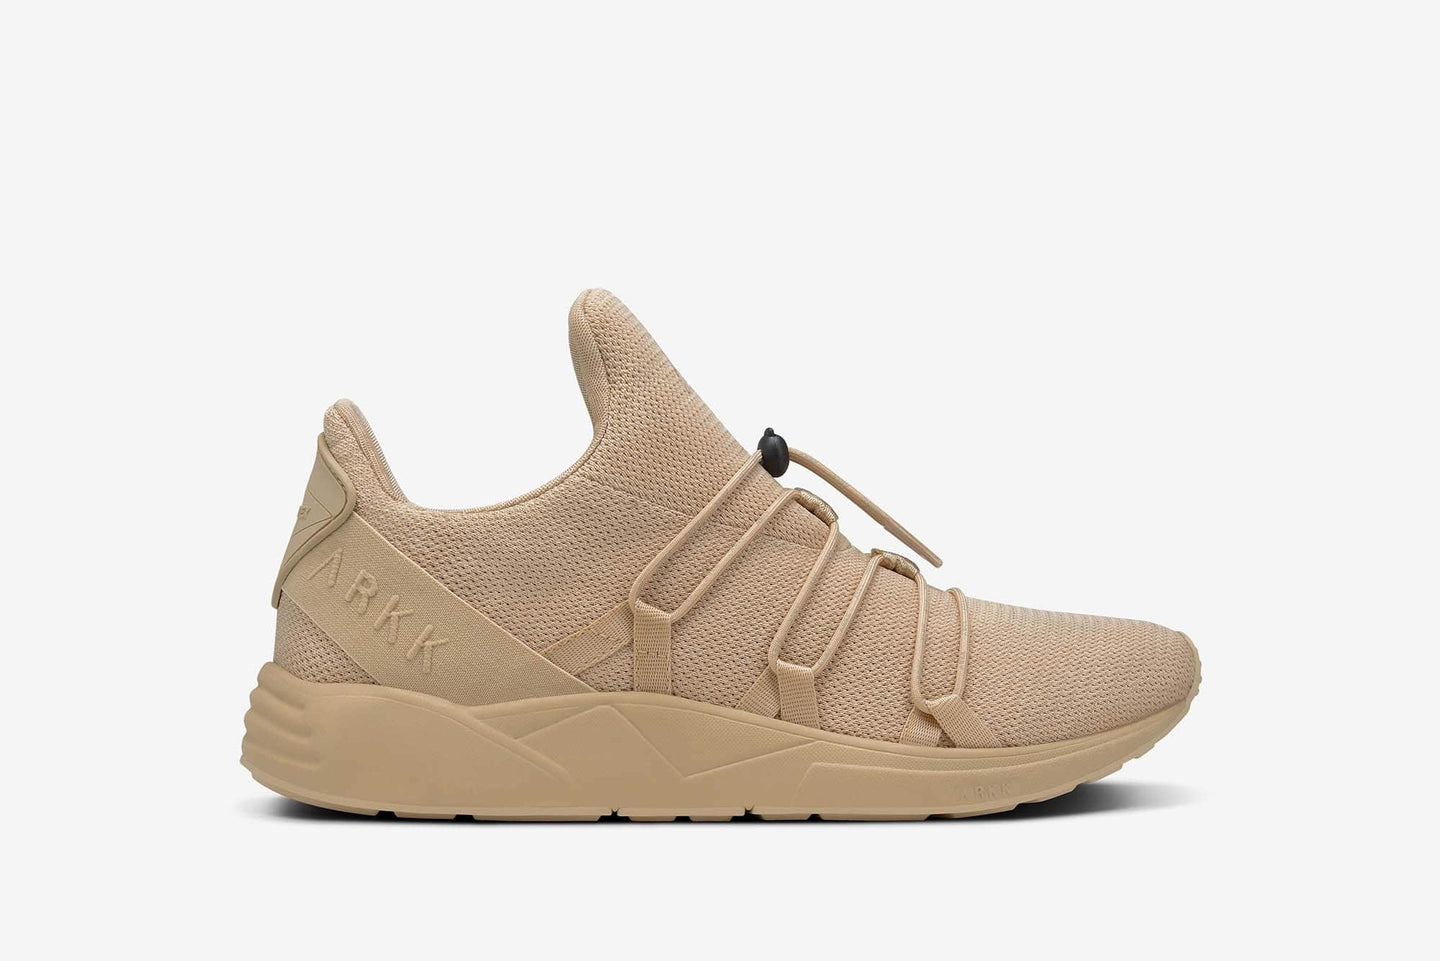 ARKK Collection Scorpitex S-E15 Desert Green Fog - Women Scorpitex Desert